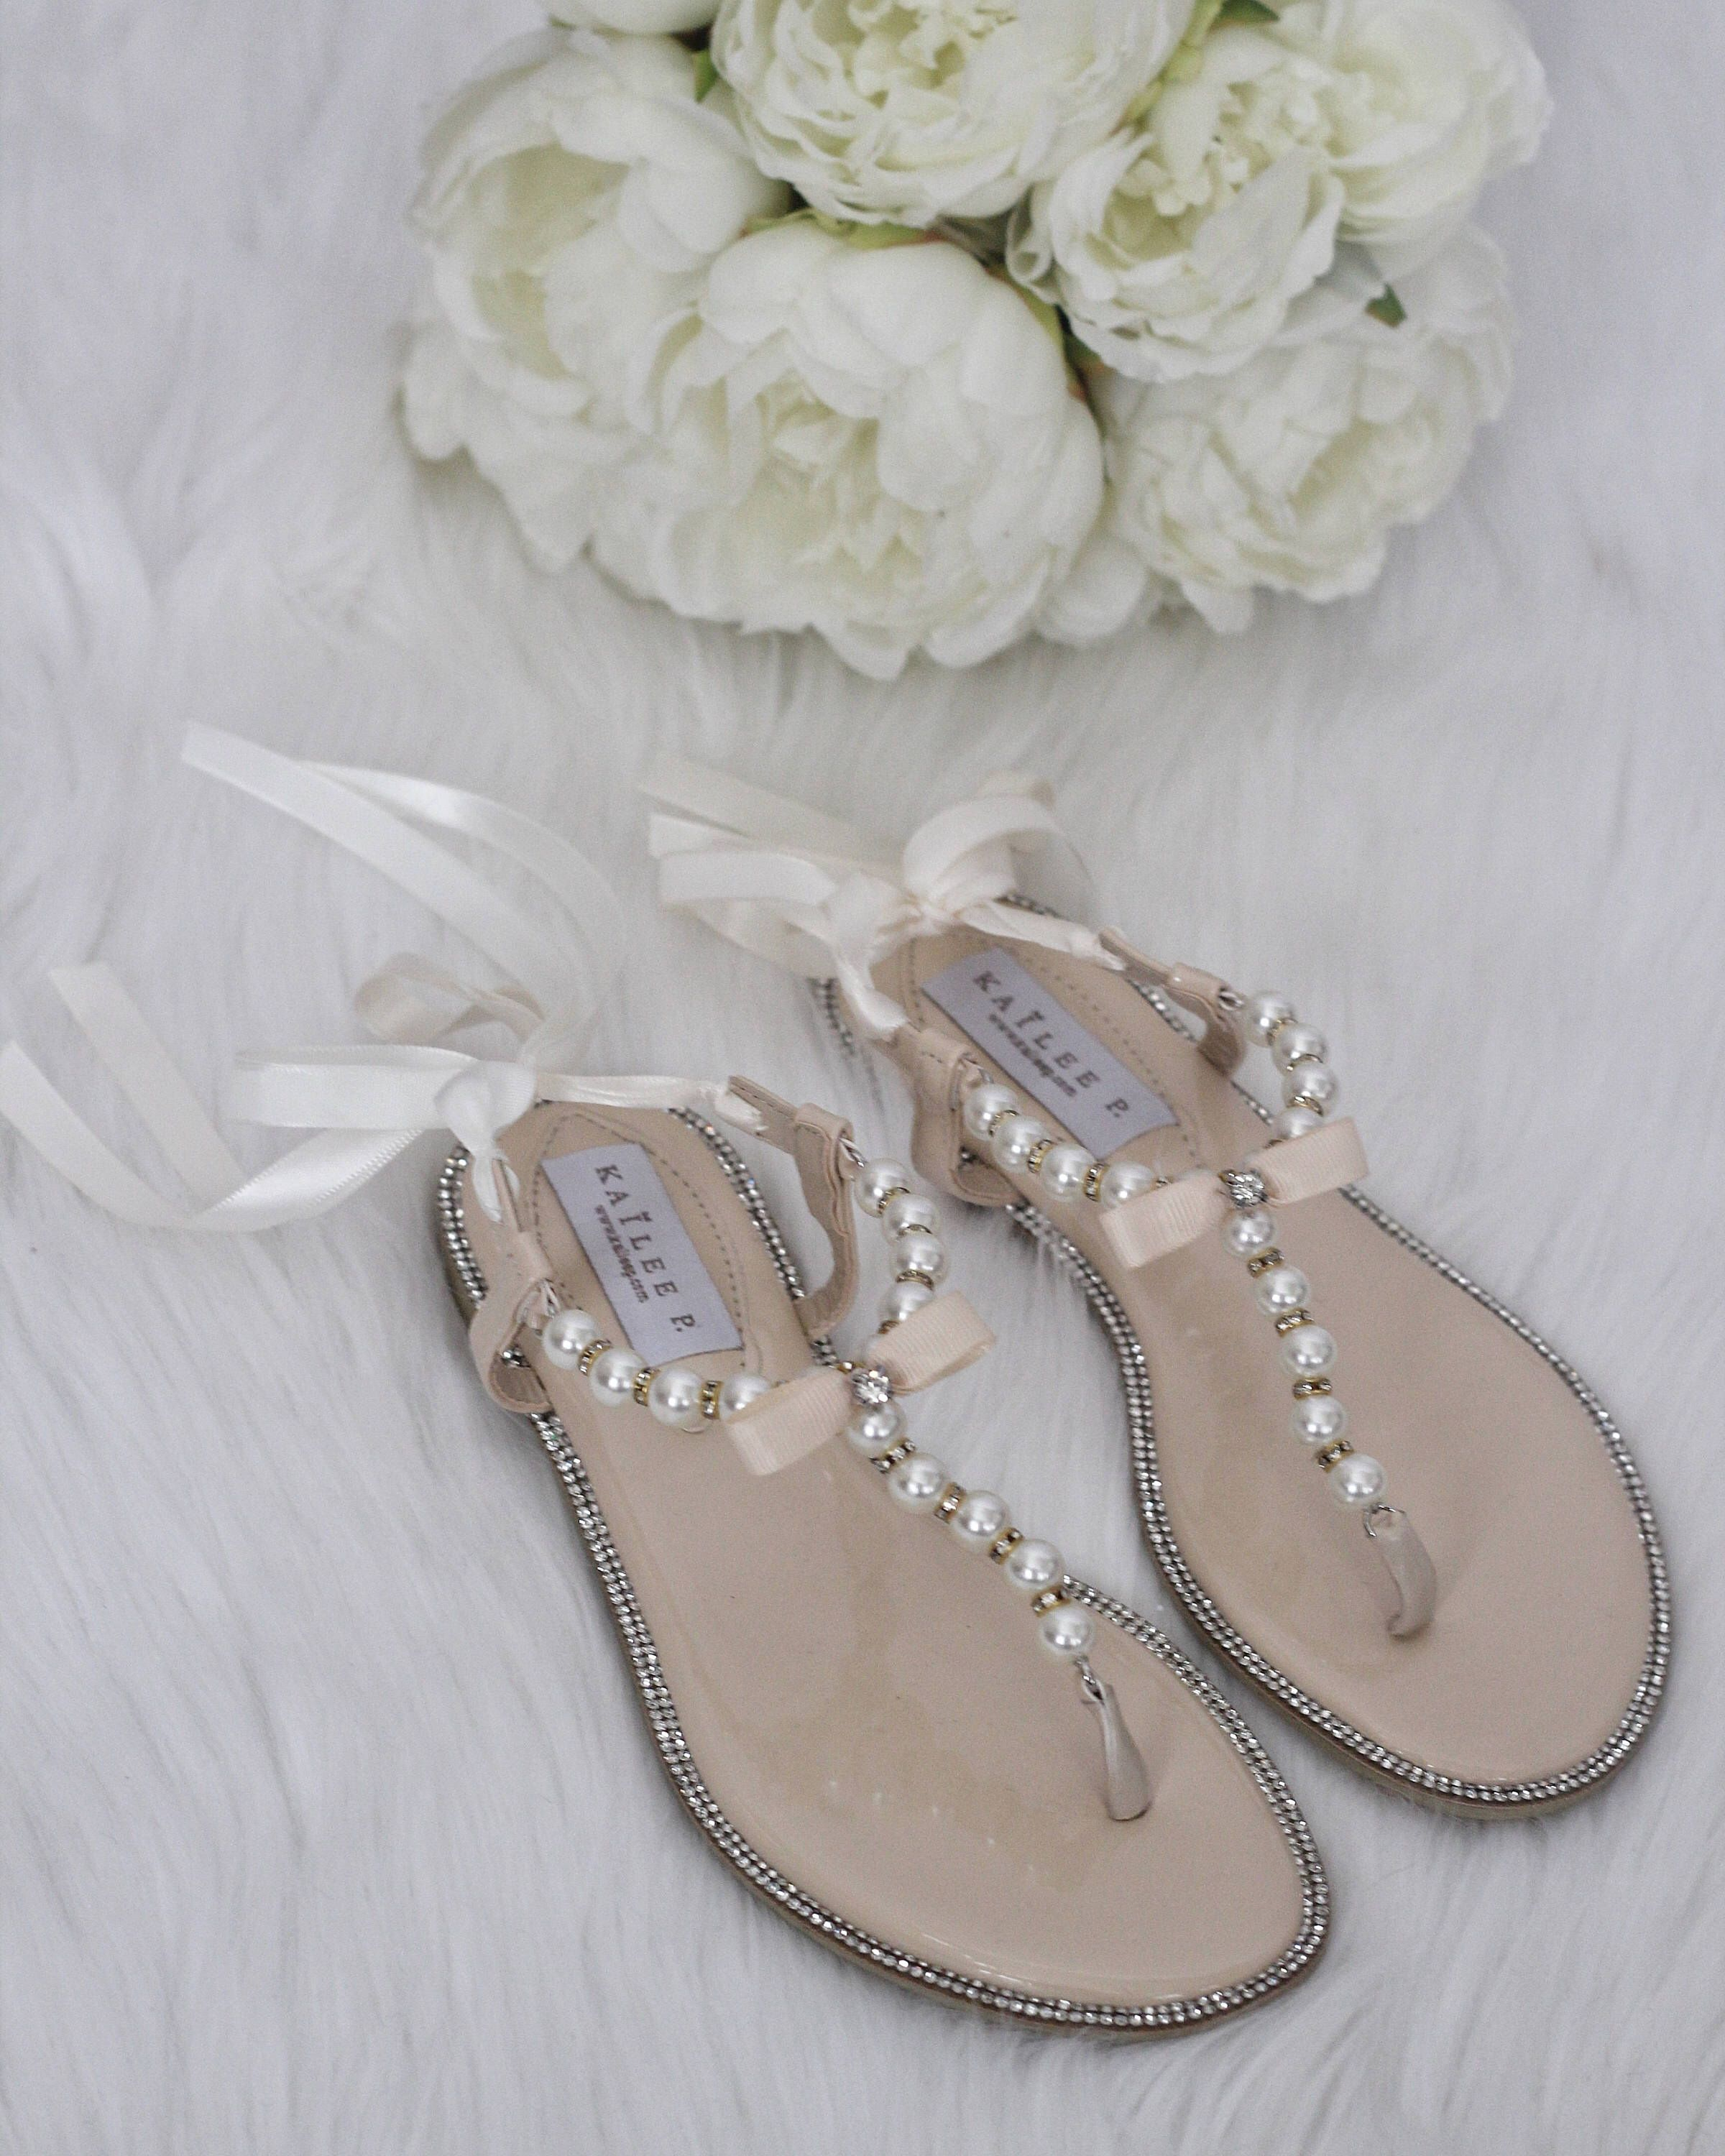 49533f6b537 Excited to share the popular to my  etsy shop  Pearl Wedding Sandals -  T-Strap BEIGE Pearl with Rhinestones flat sandal with satin ankle strap -  Women ...